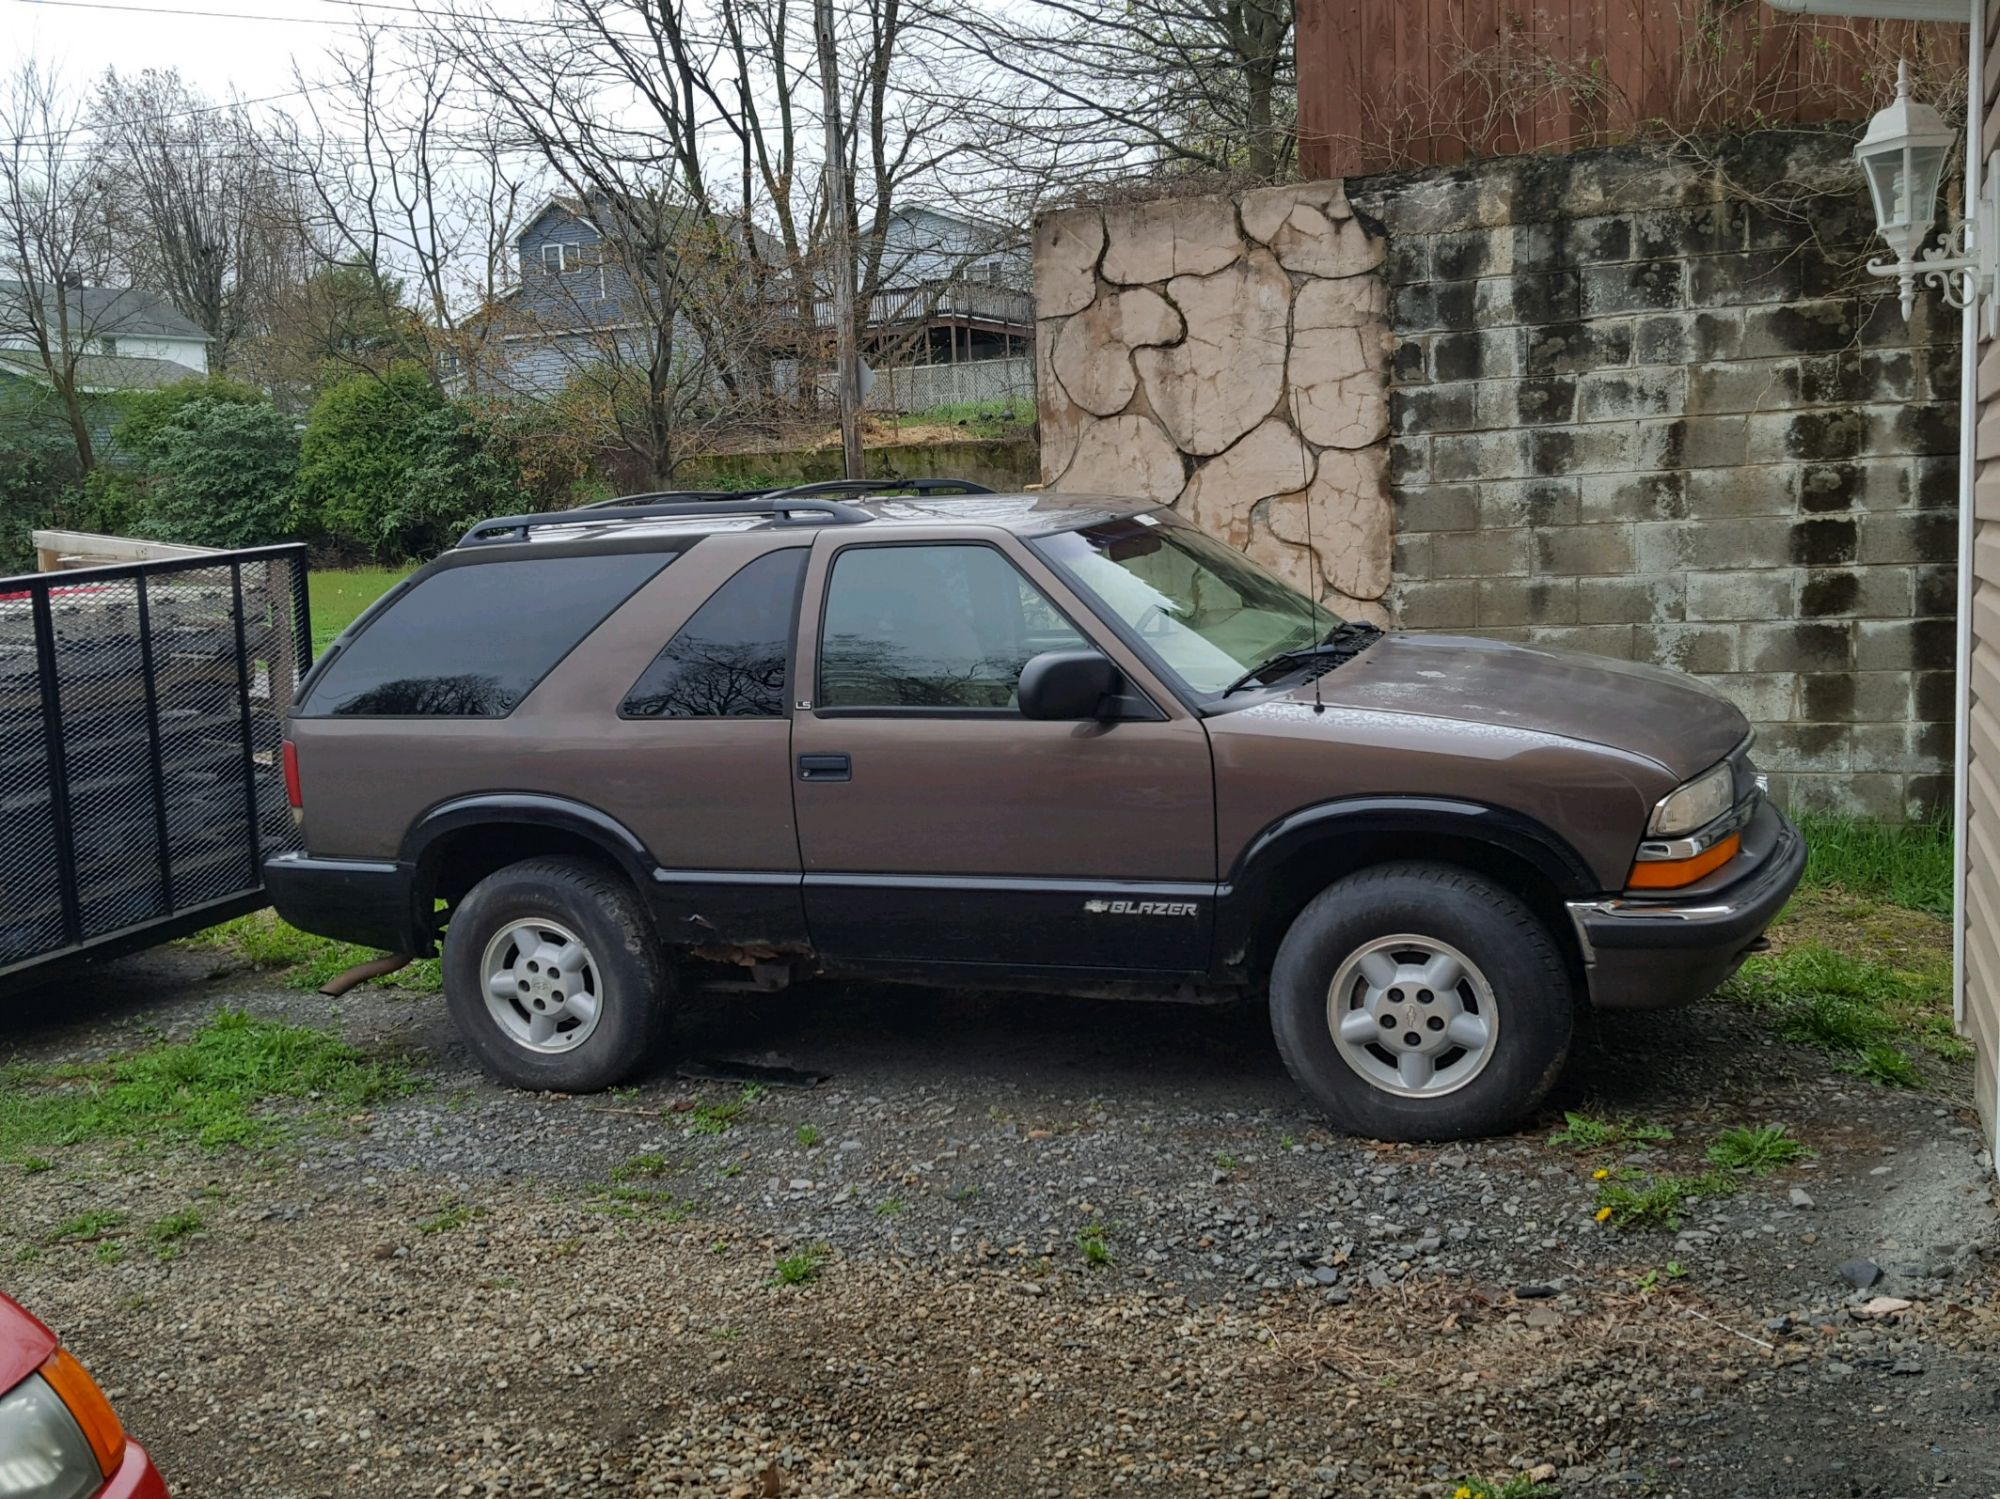 hight resolution of 2000 chevy blazer for sale cars trucks paper shop free classifieds